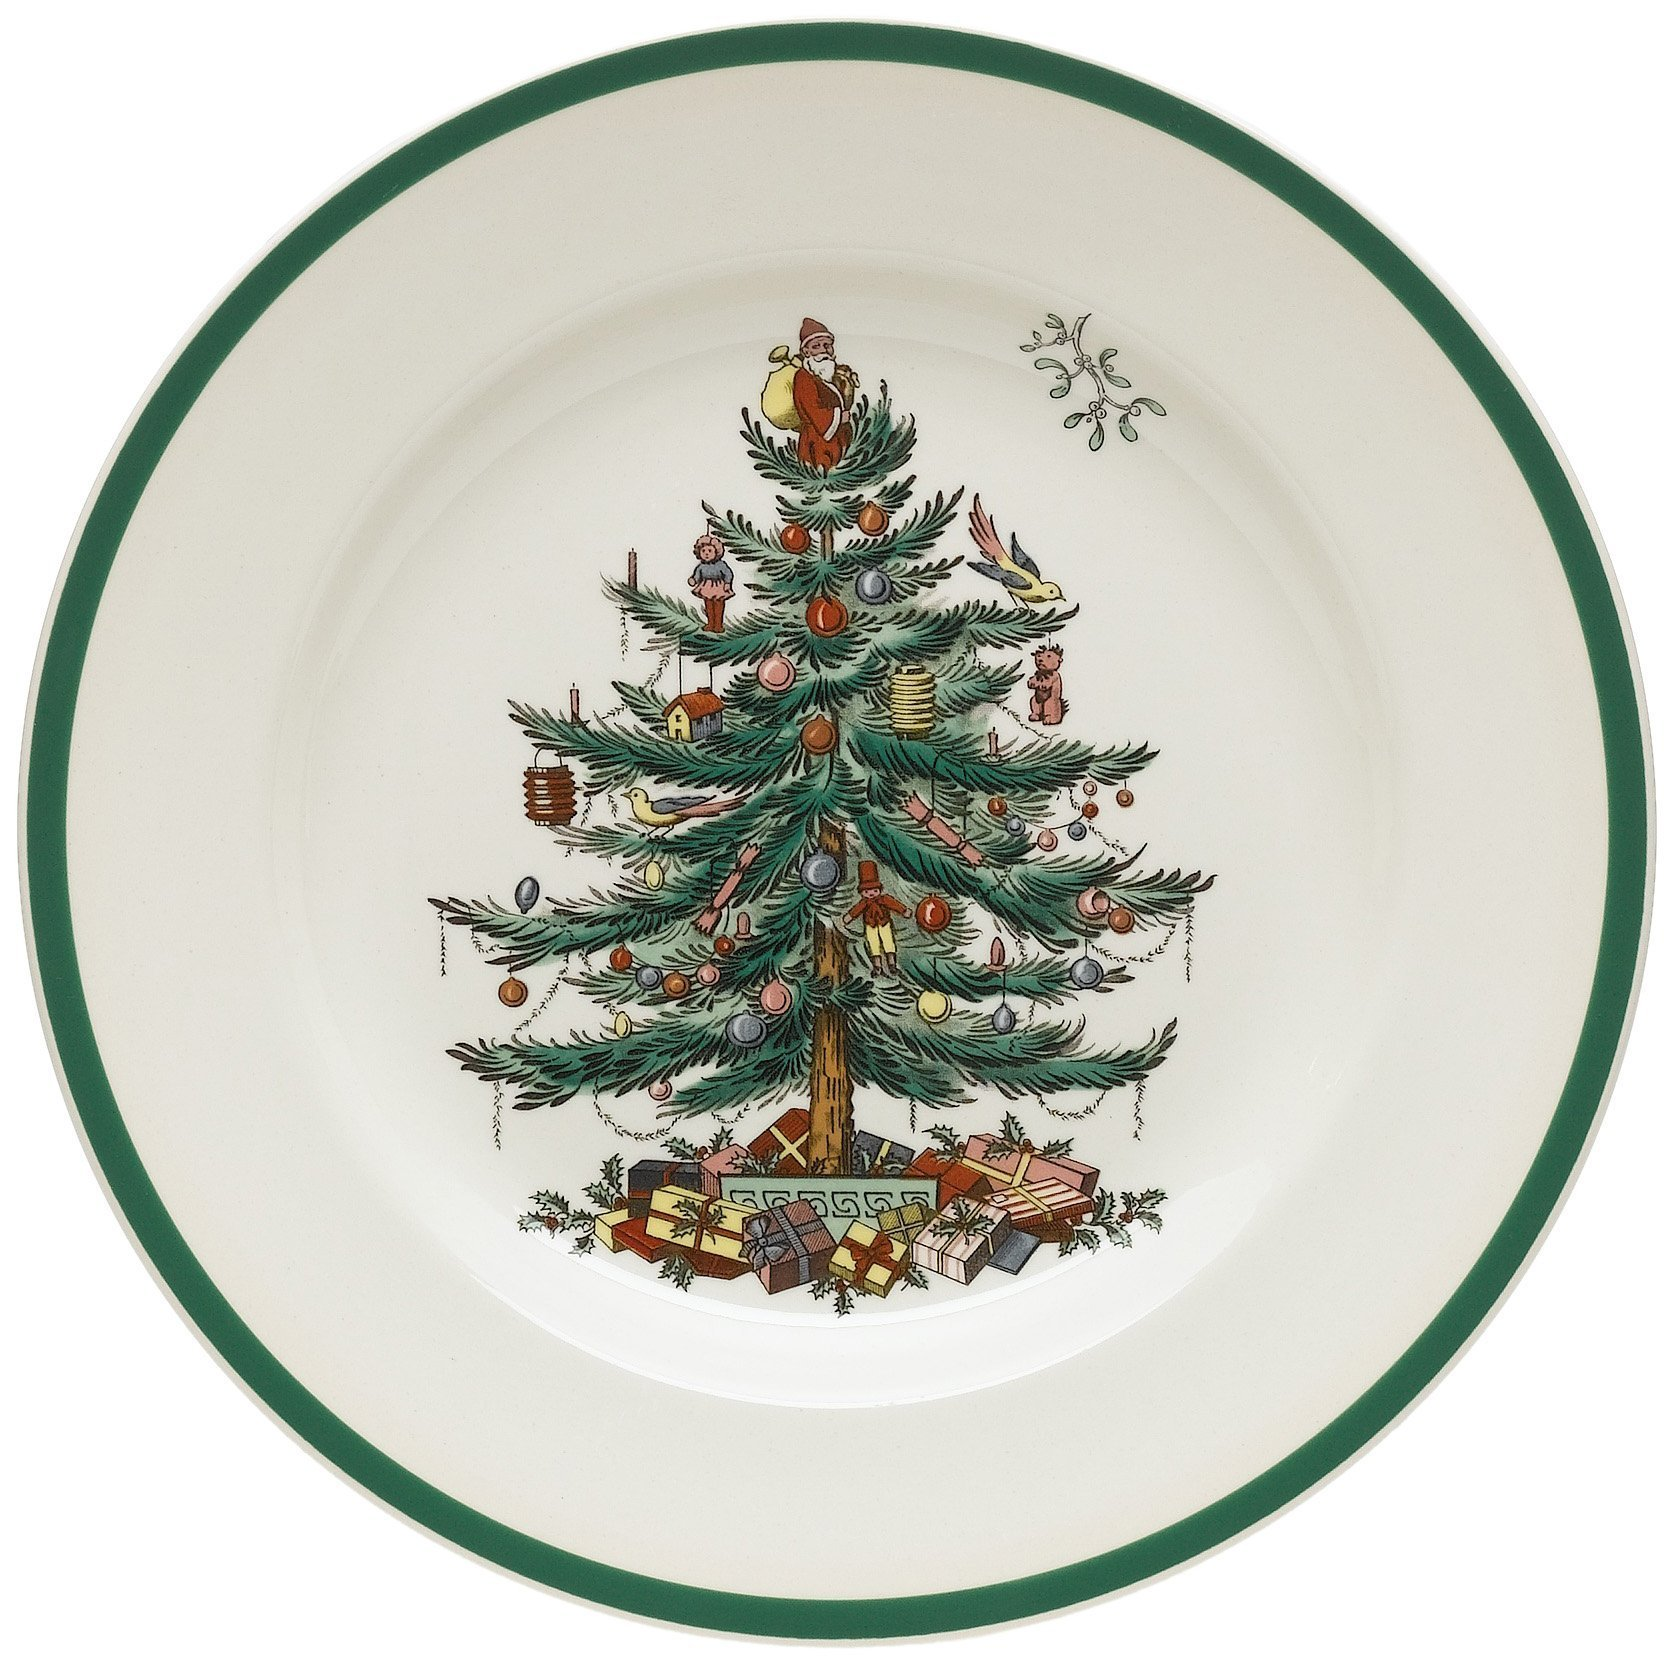 Spode Christmas Tree 10-1/2-Inch Dinner Plates, Set of 4 by Spode